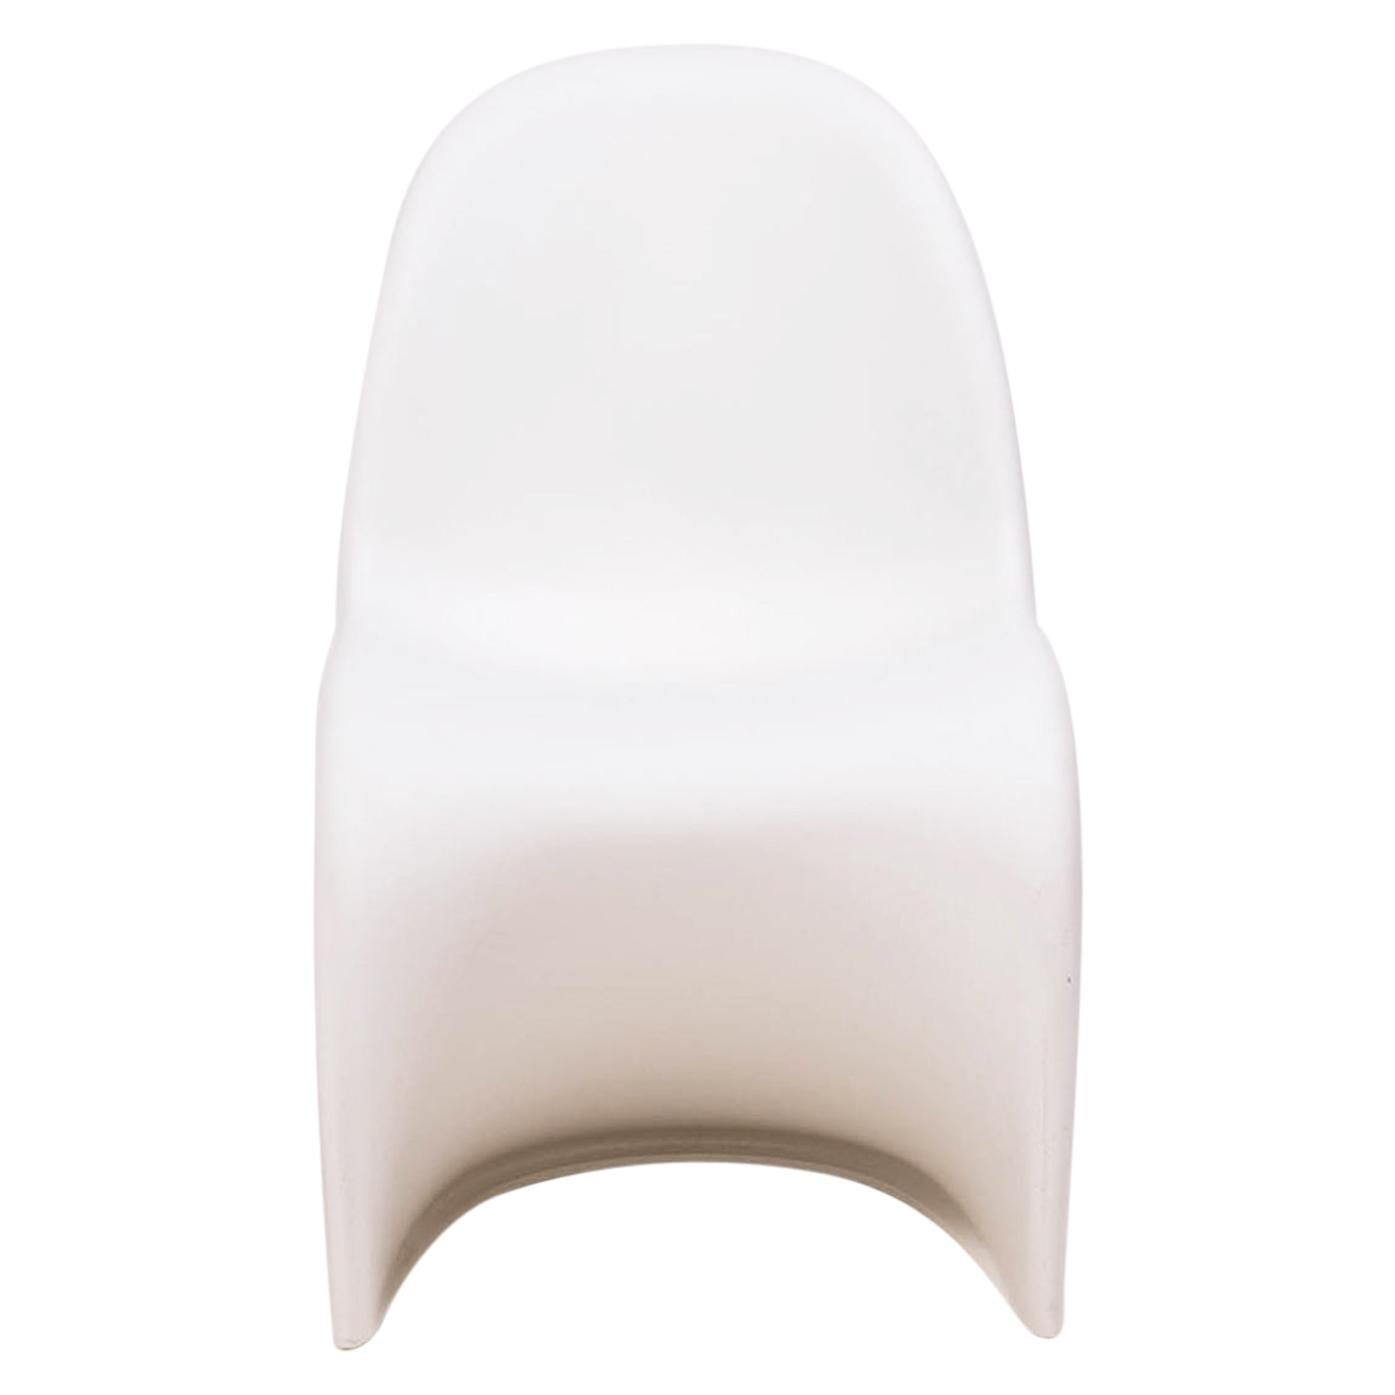 Mid Century Modern White Panton Chairs by Verner Panton for Vitra